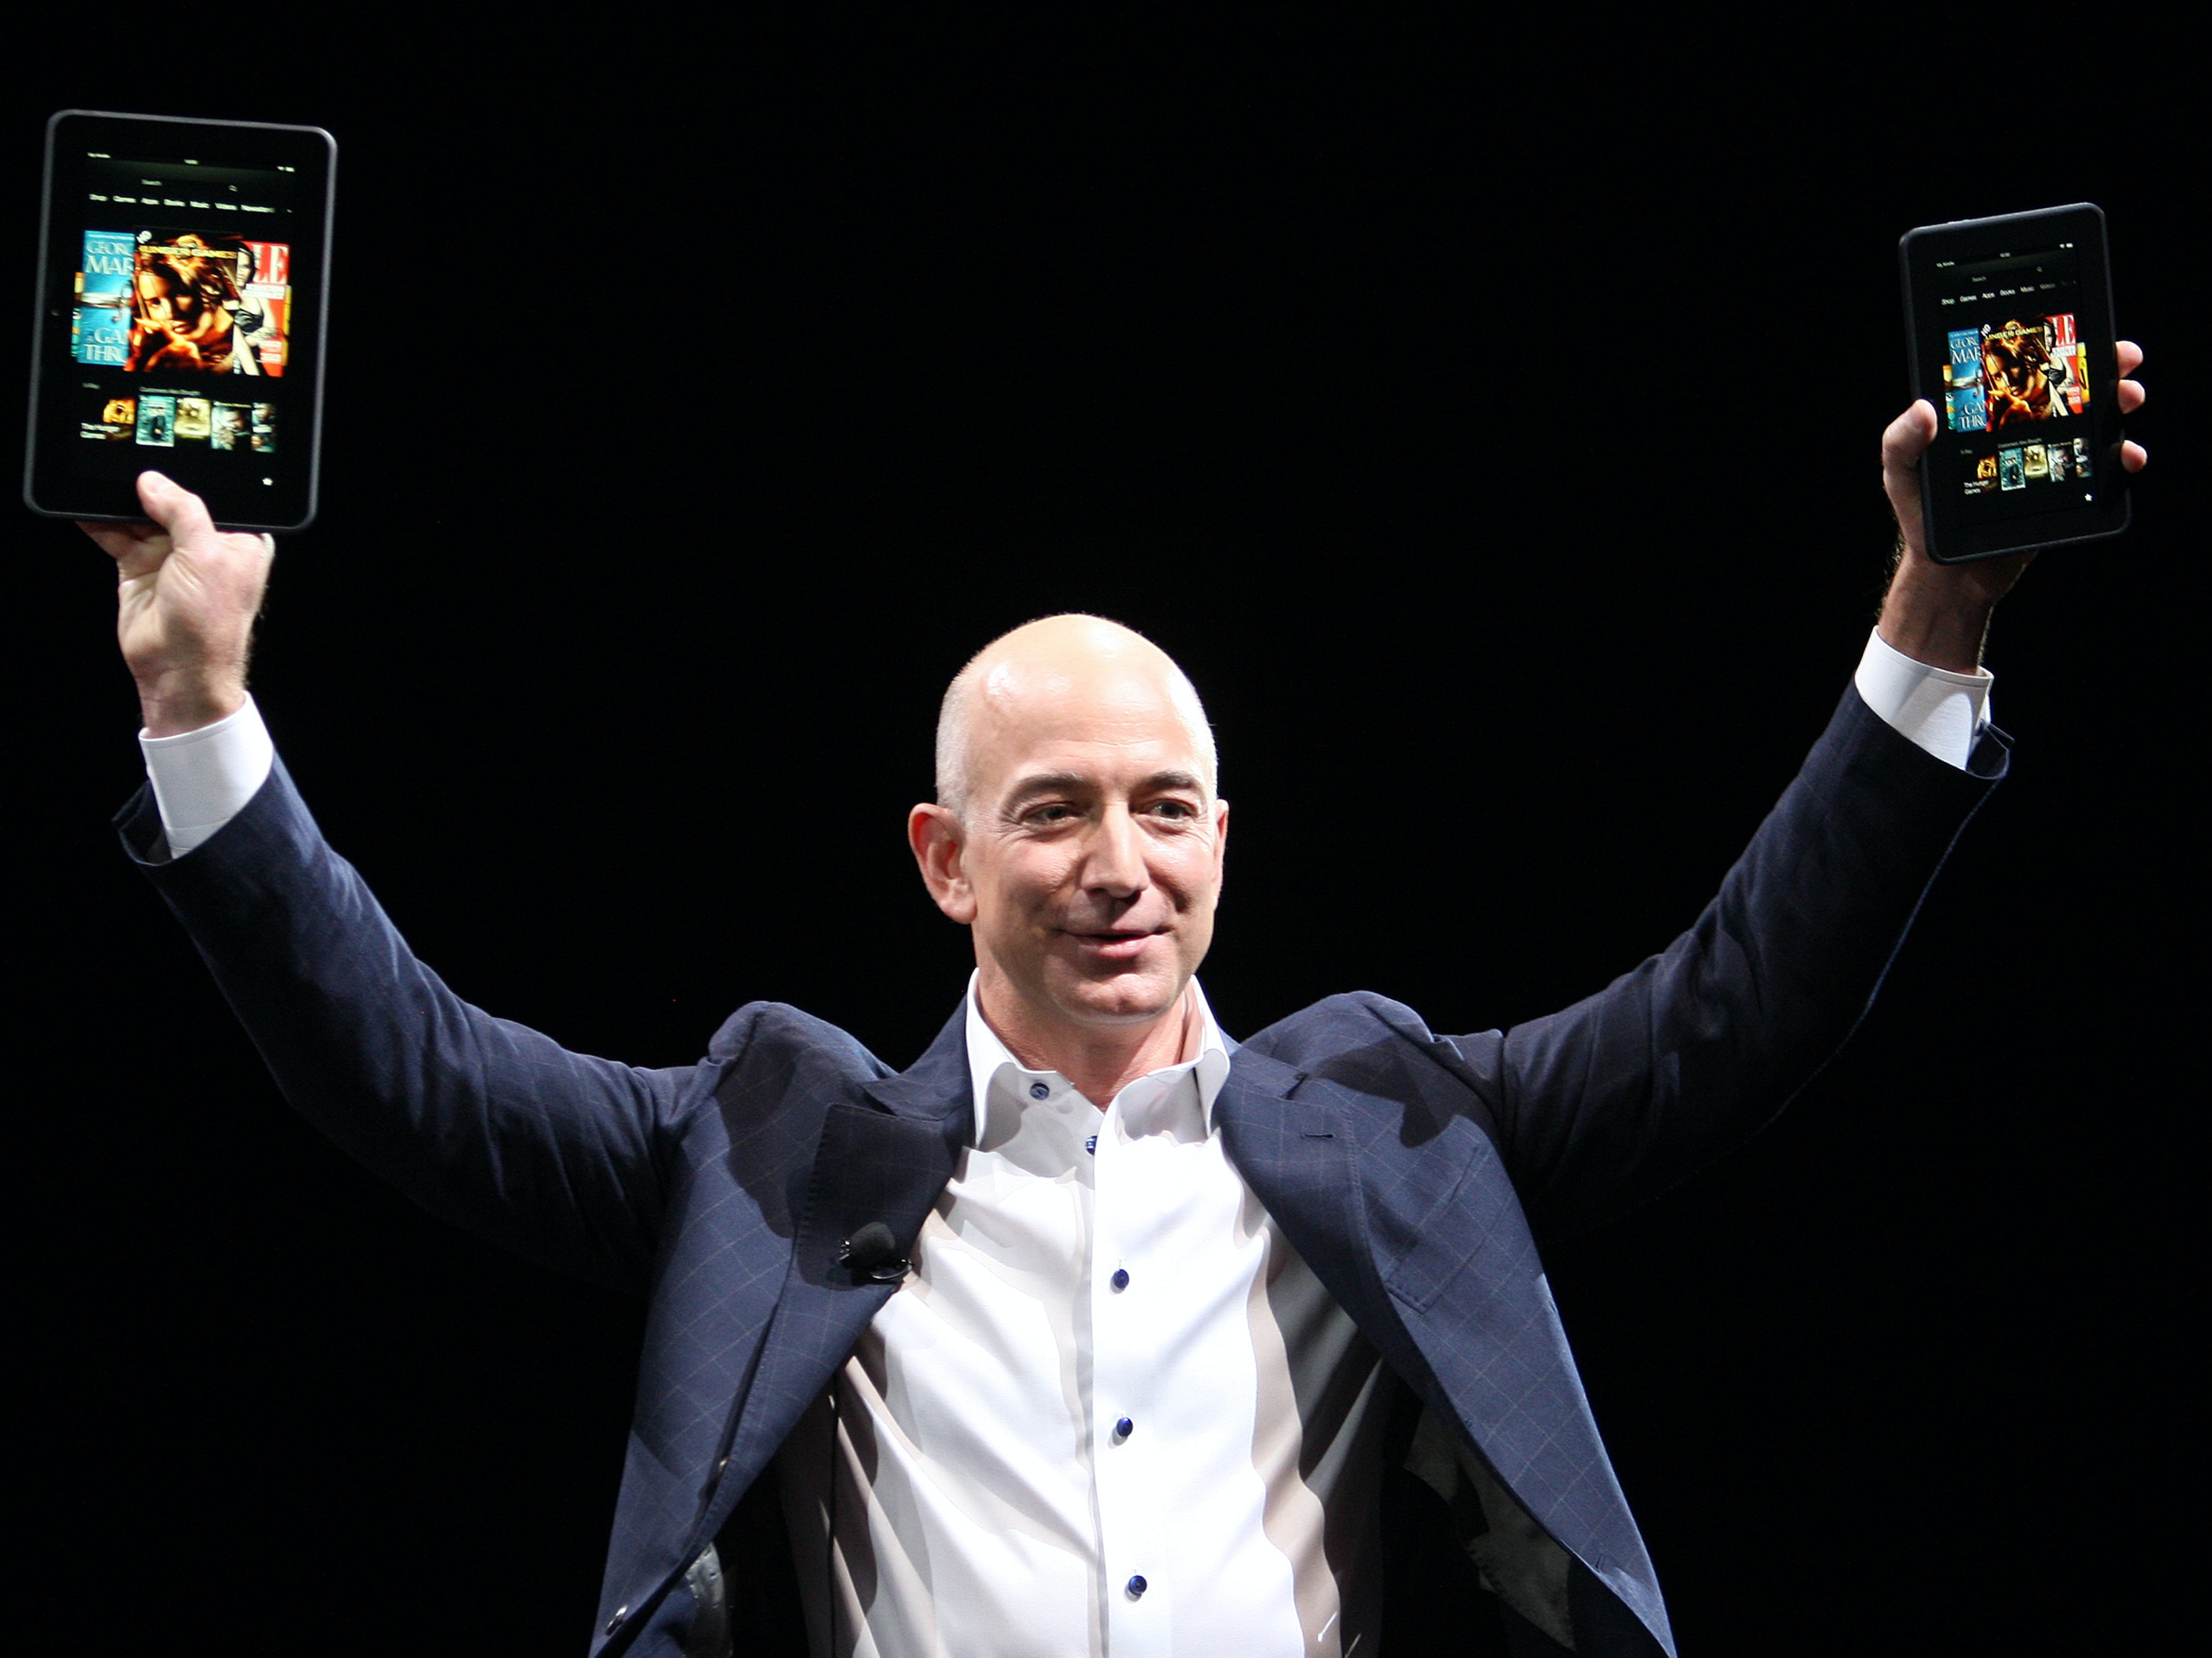 Jeff Bezos appeared on Morning Talk shows to discuss Blue Origin